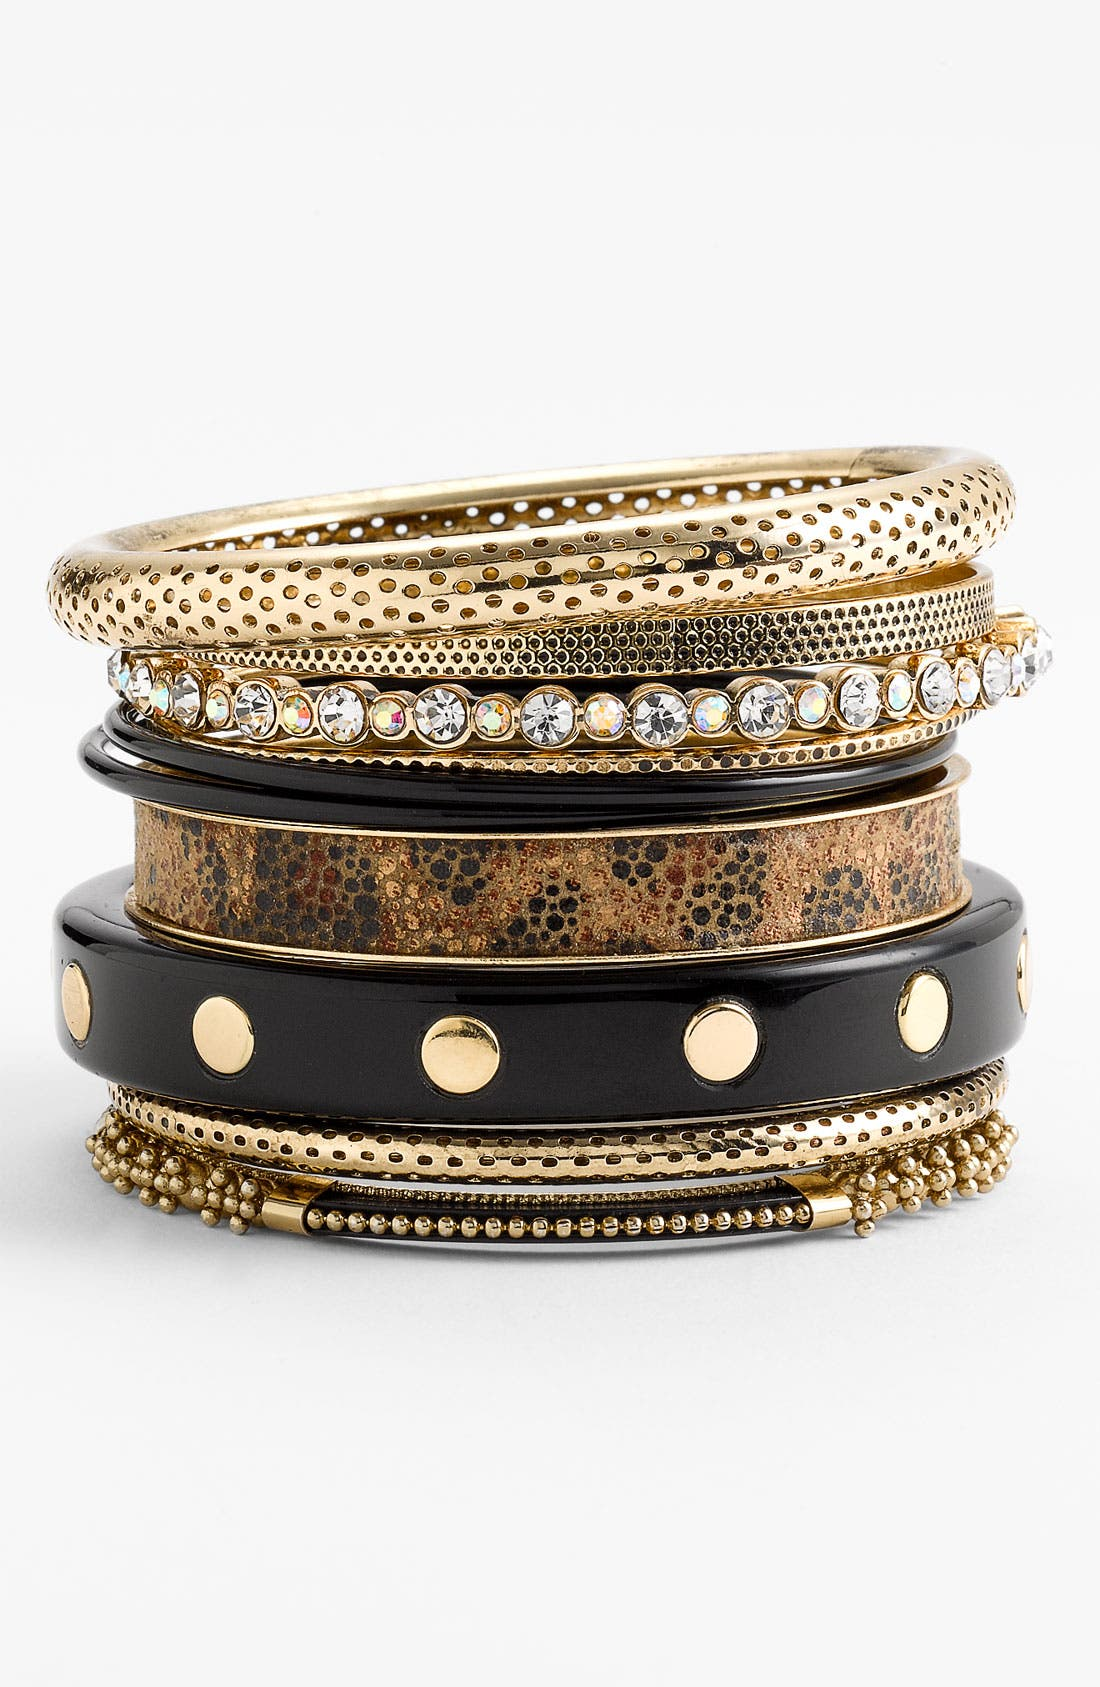 Alternate Image 1 Selected - Natasha Couture 'Leopard' Bangles (Set of 10)